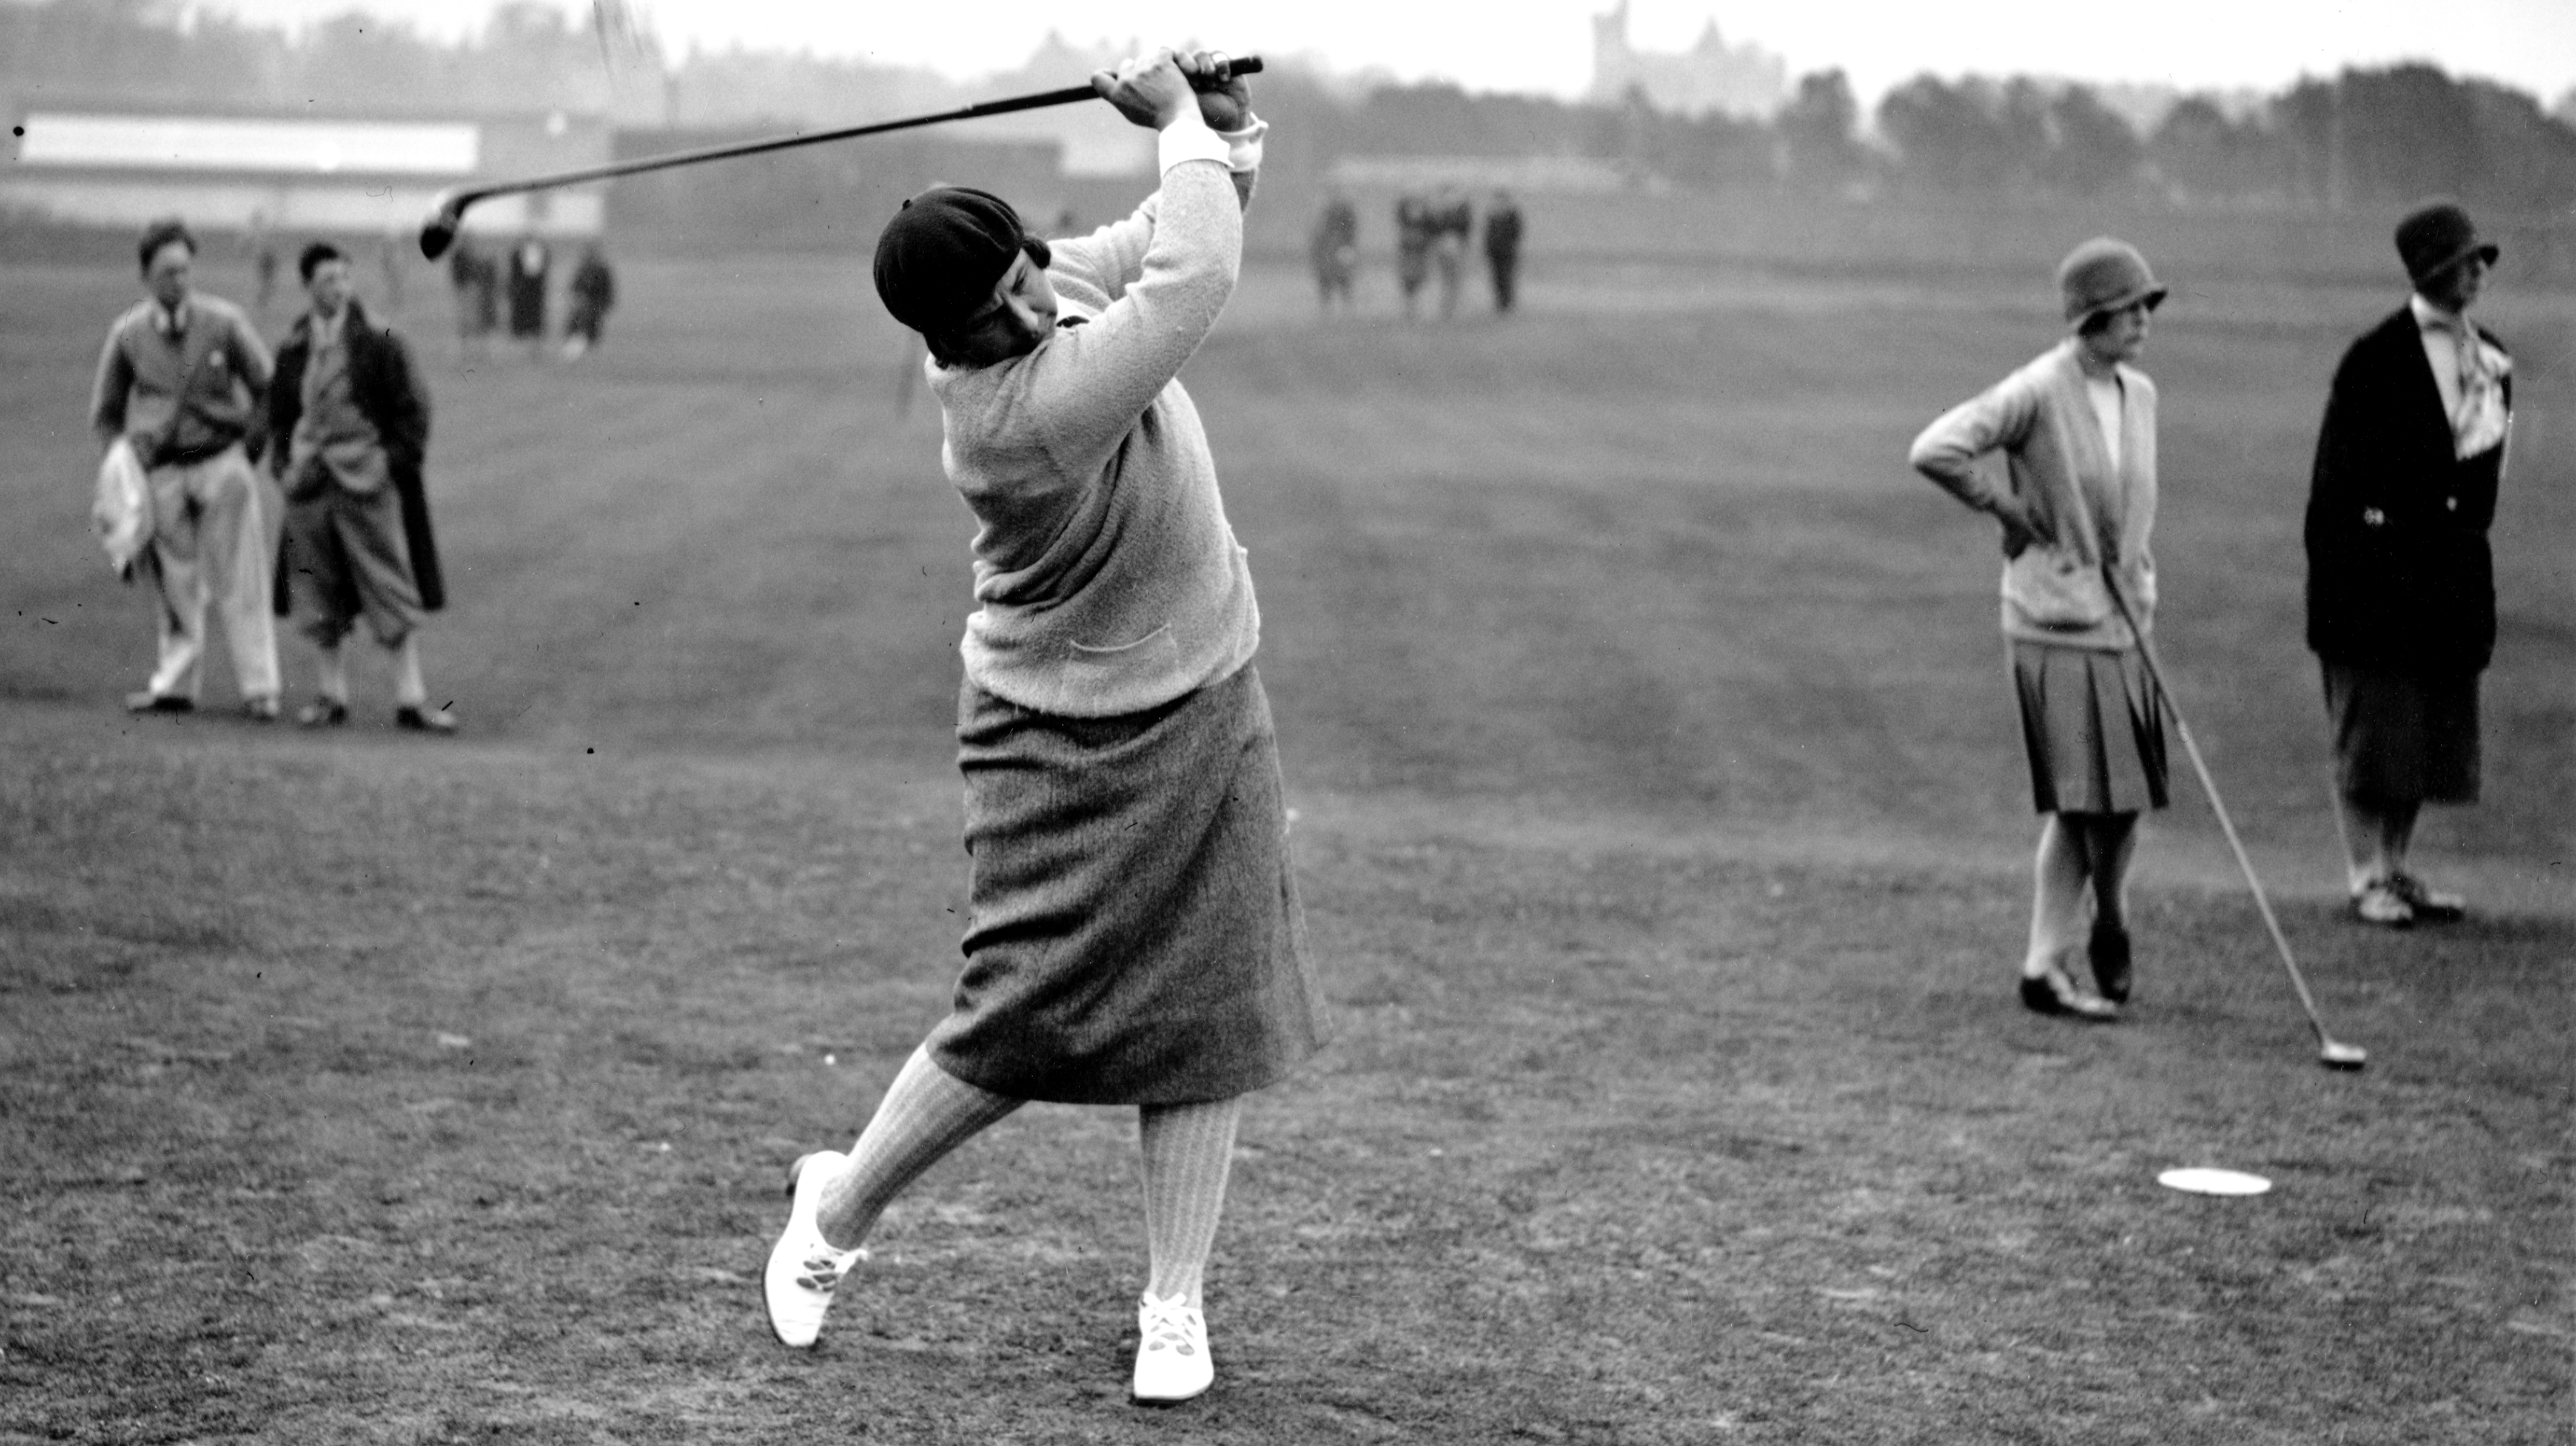 Marion Hollins, the captain of the first American Curtis Cup team and the founder of Women's National Golf & Tennis Club. (Photo by Puttnam/Topical Press Agency/Hulton Archive/Getty Images)